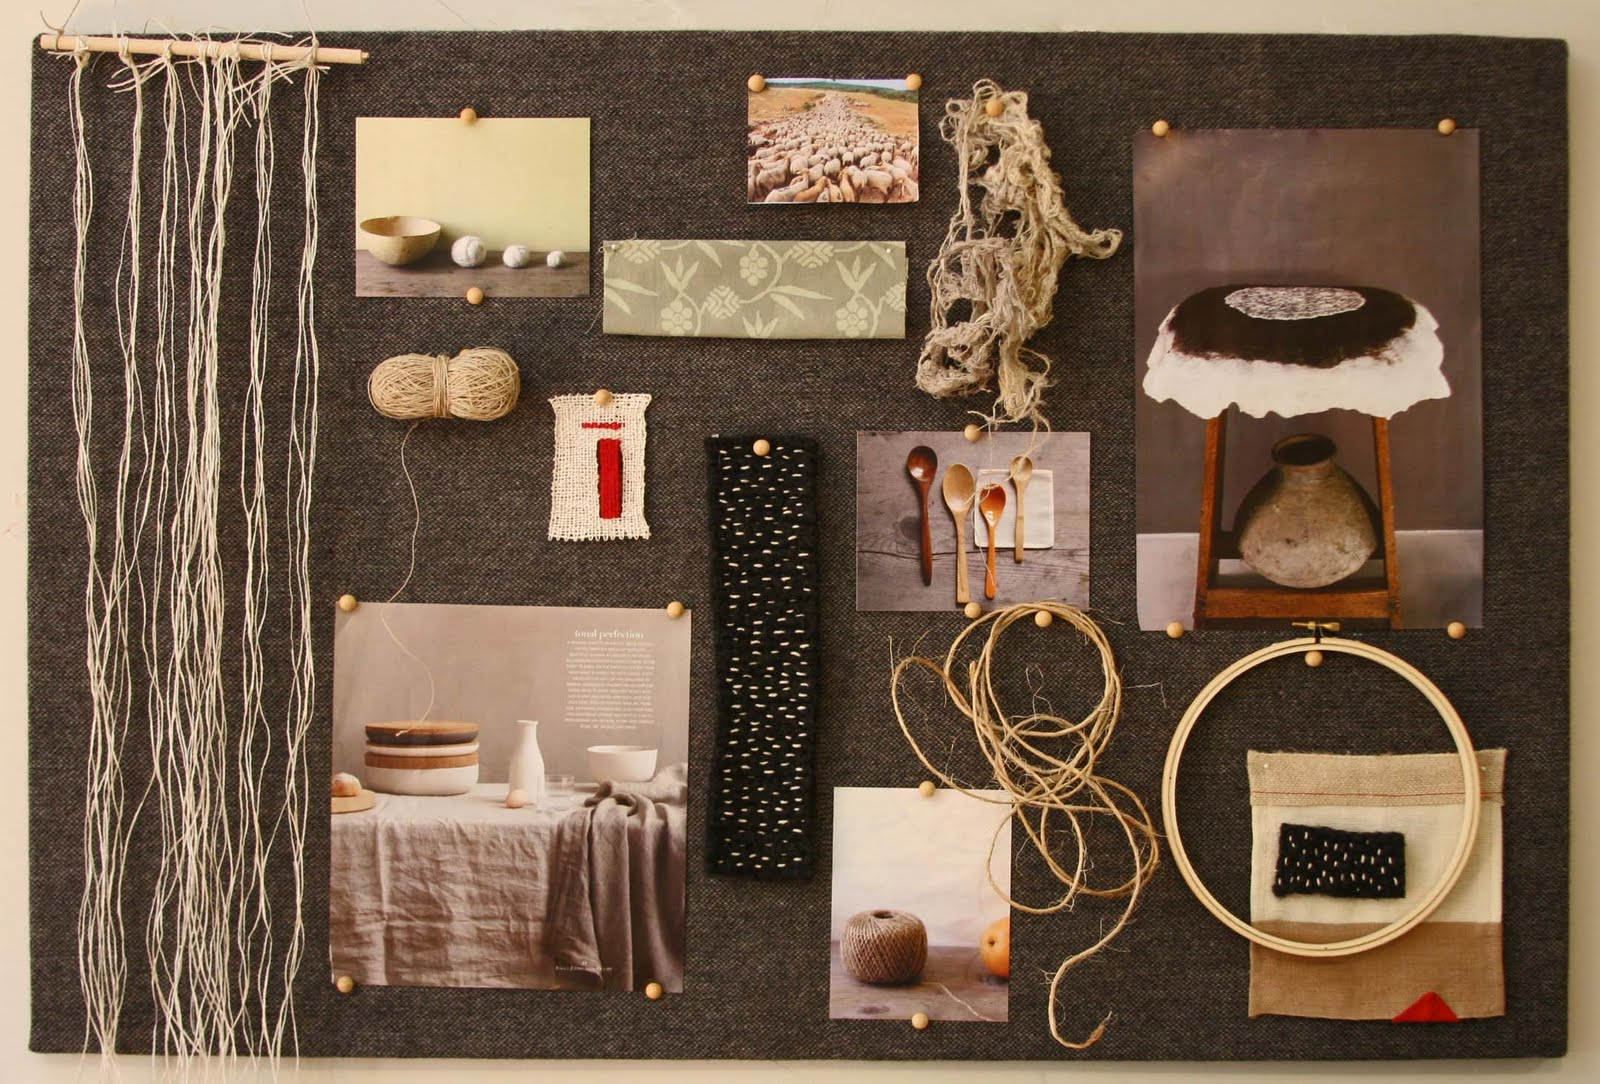 Inspiration board by Caroline Brealey